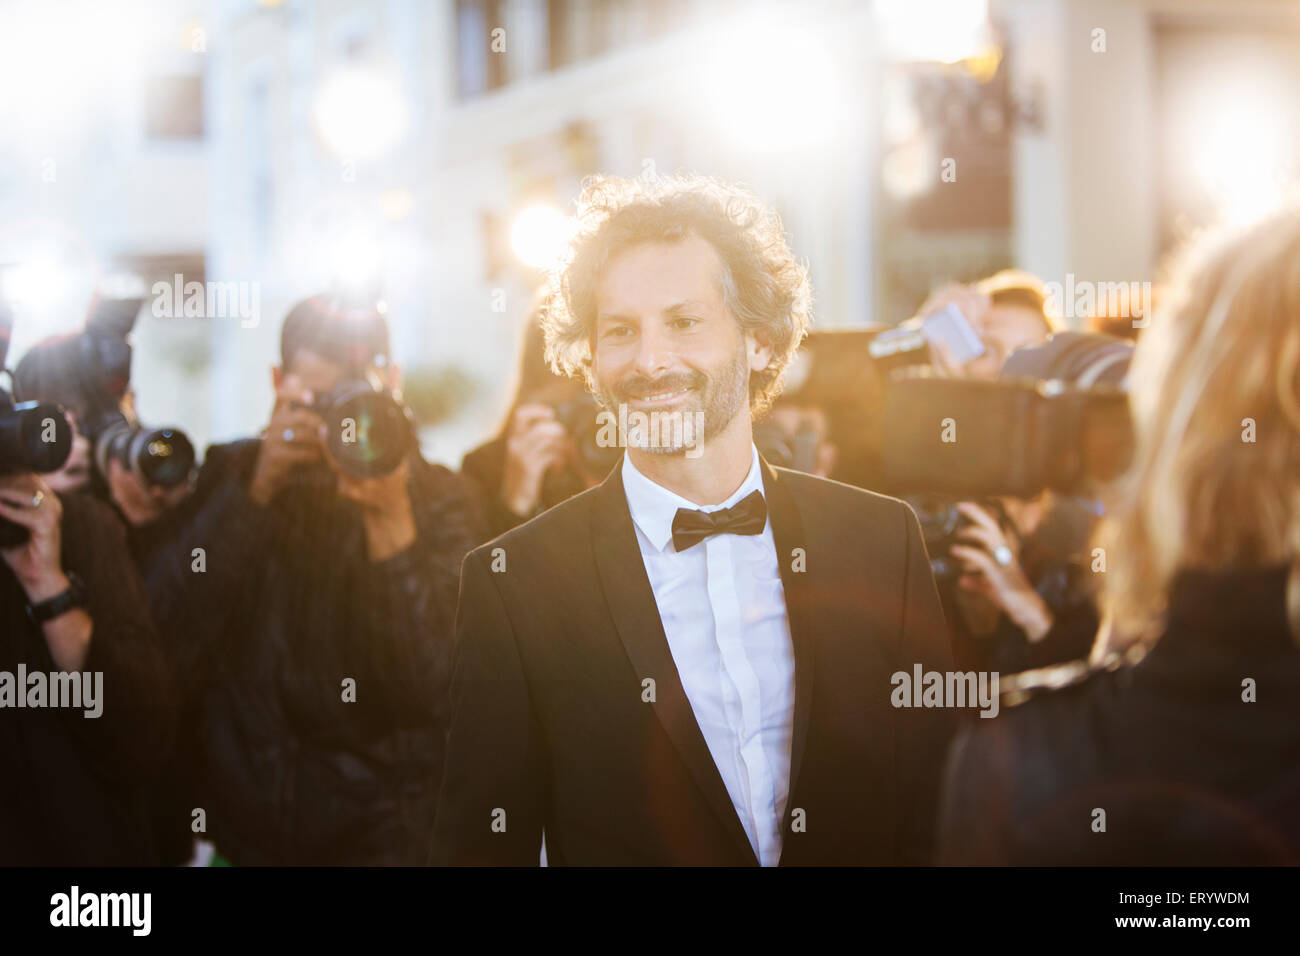 Smiling celebrity being photographed by paparazzi at event - Stock Image